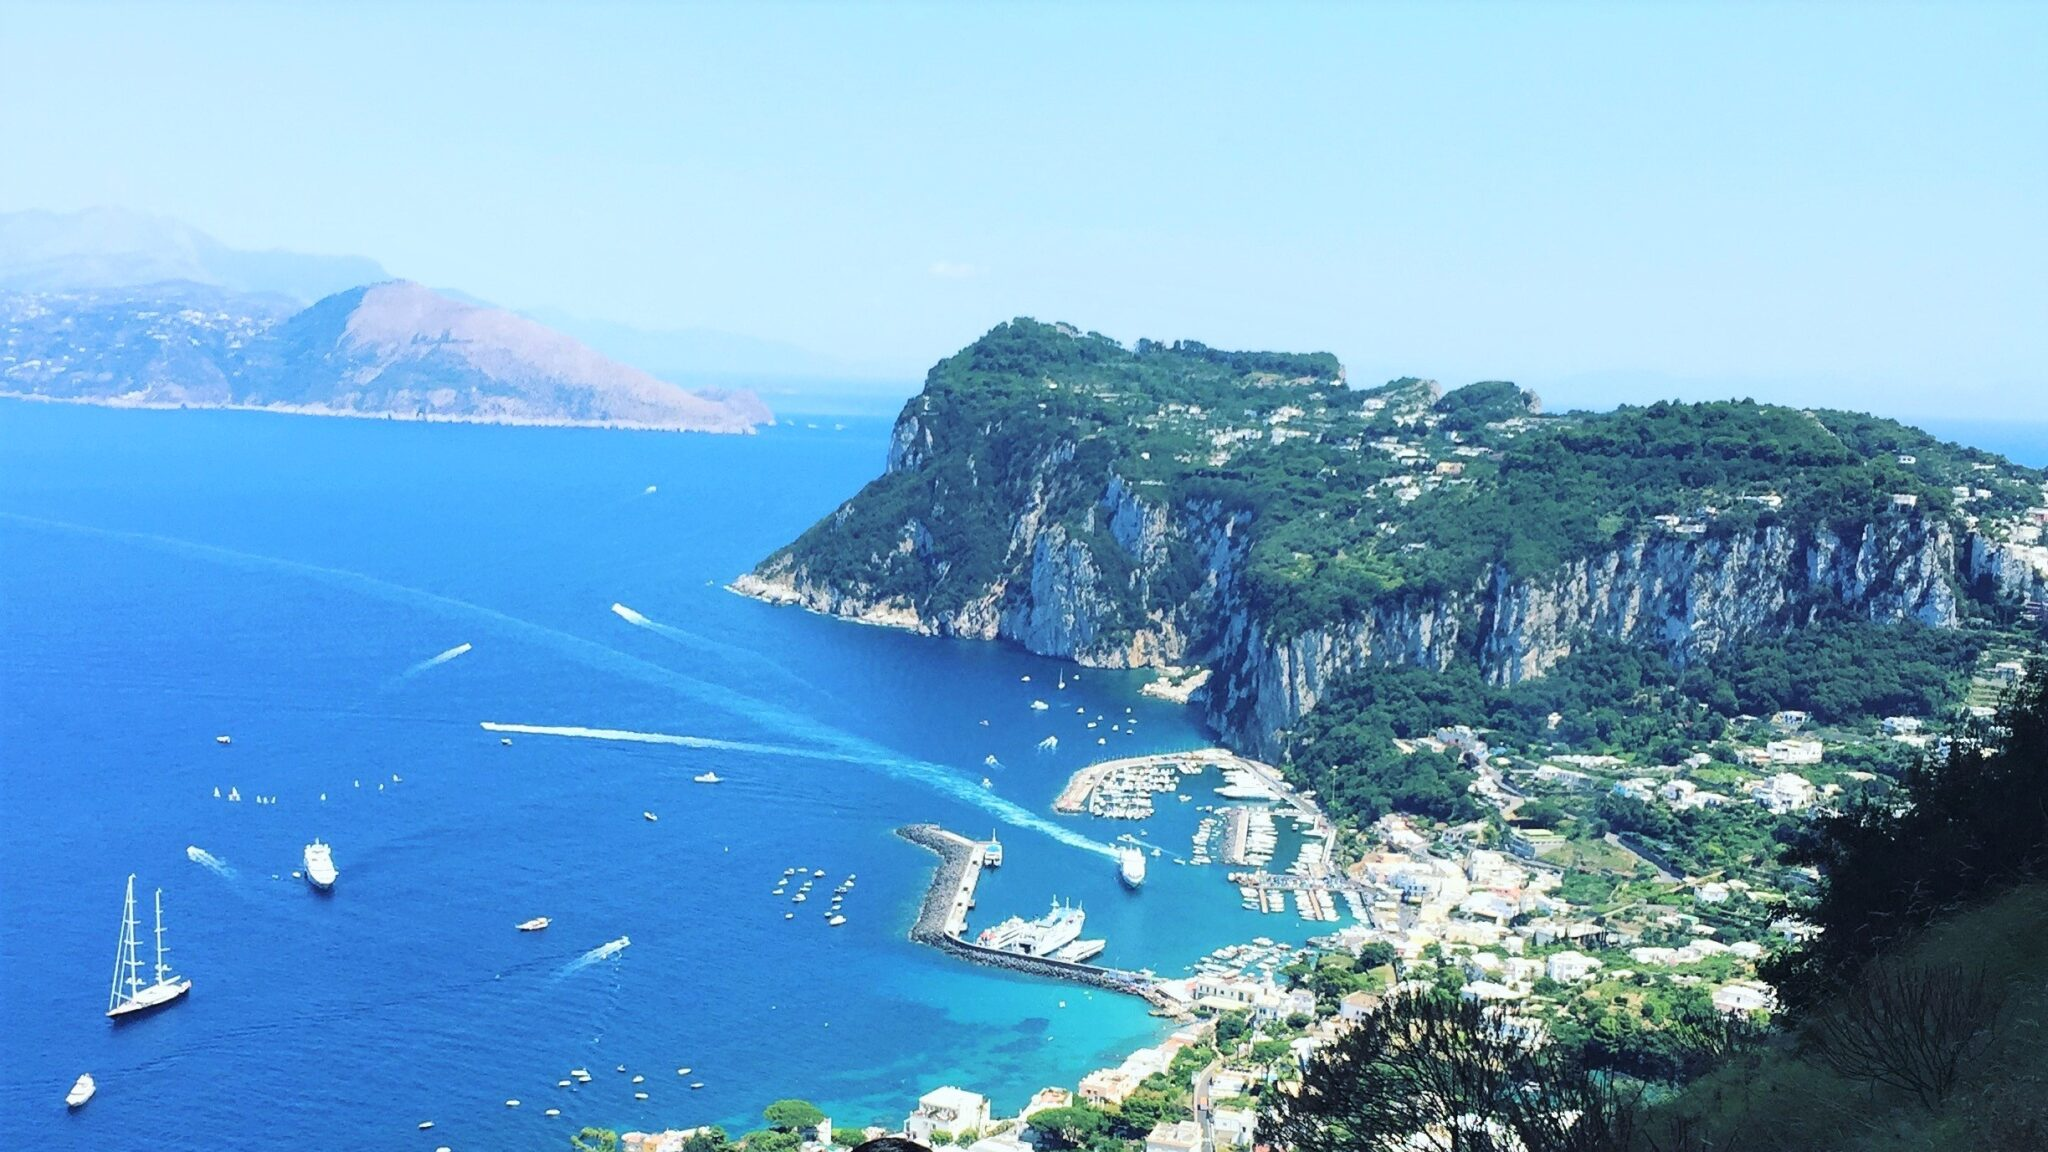 Visiting Capri, Italy: An Unforgettable Italian Destination | Land Of Travels